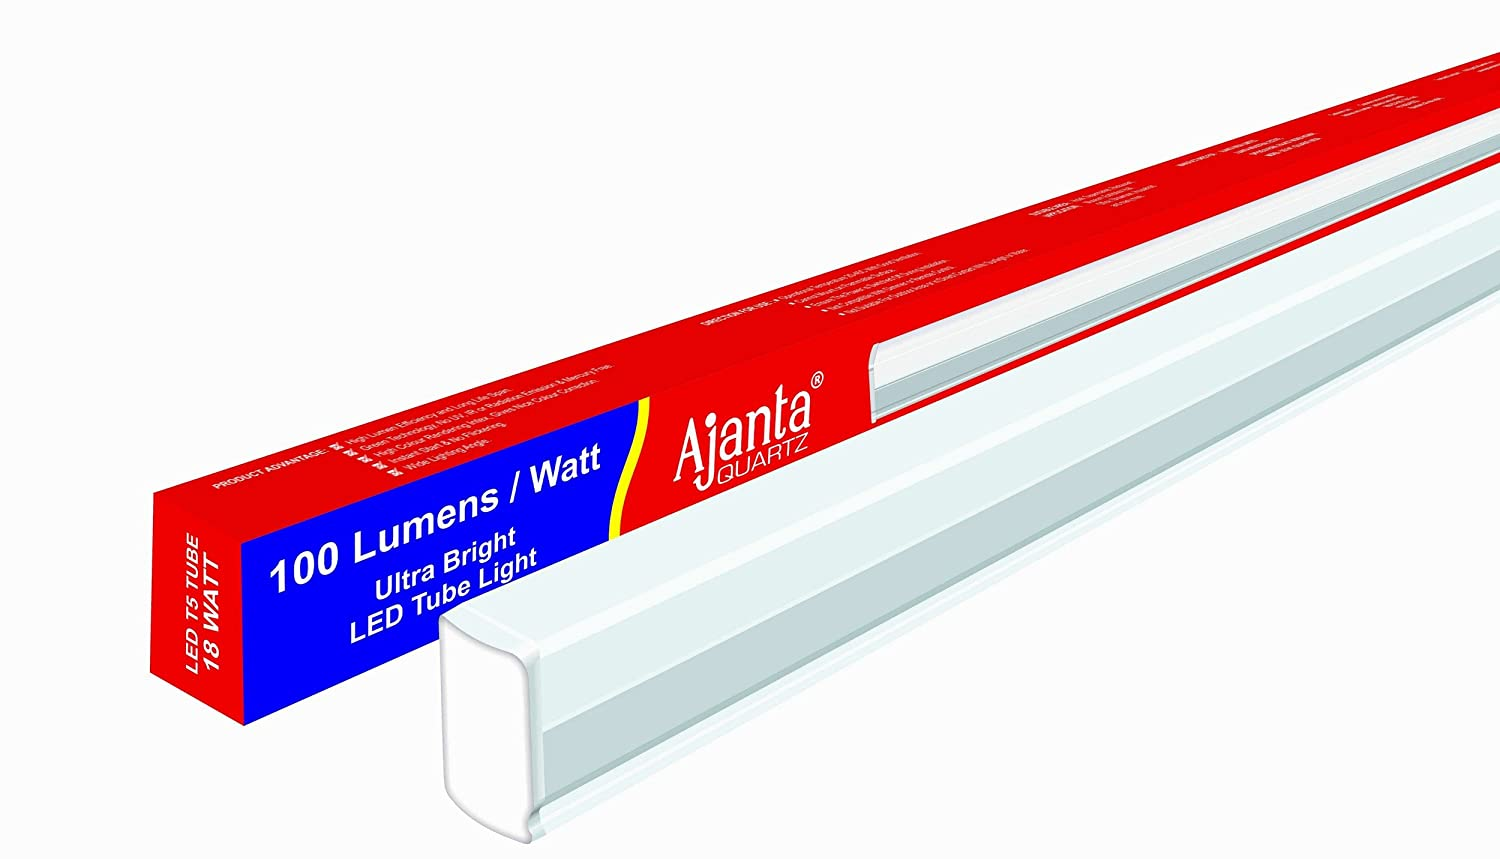 Ajanta QuartzT5 Square 18-Watt LED Tubelight (White) Warranty 2 years